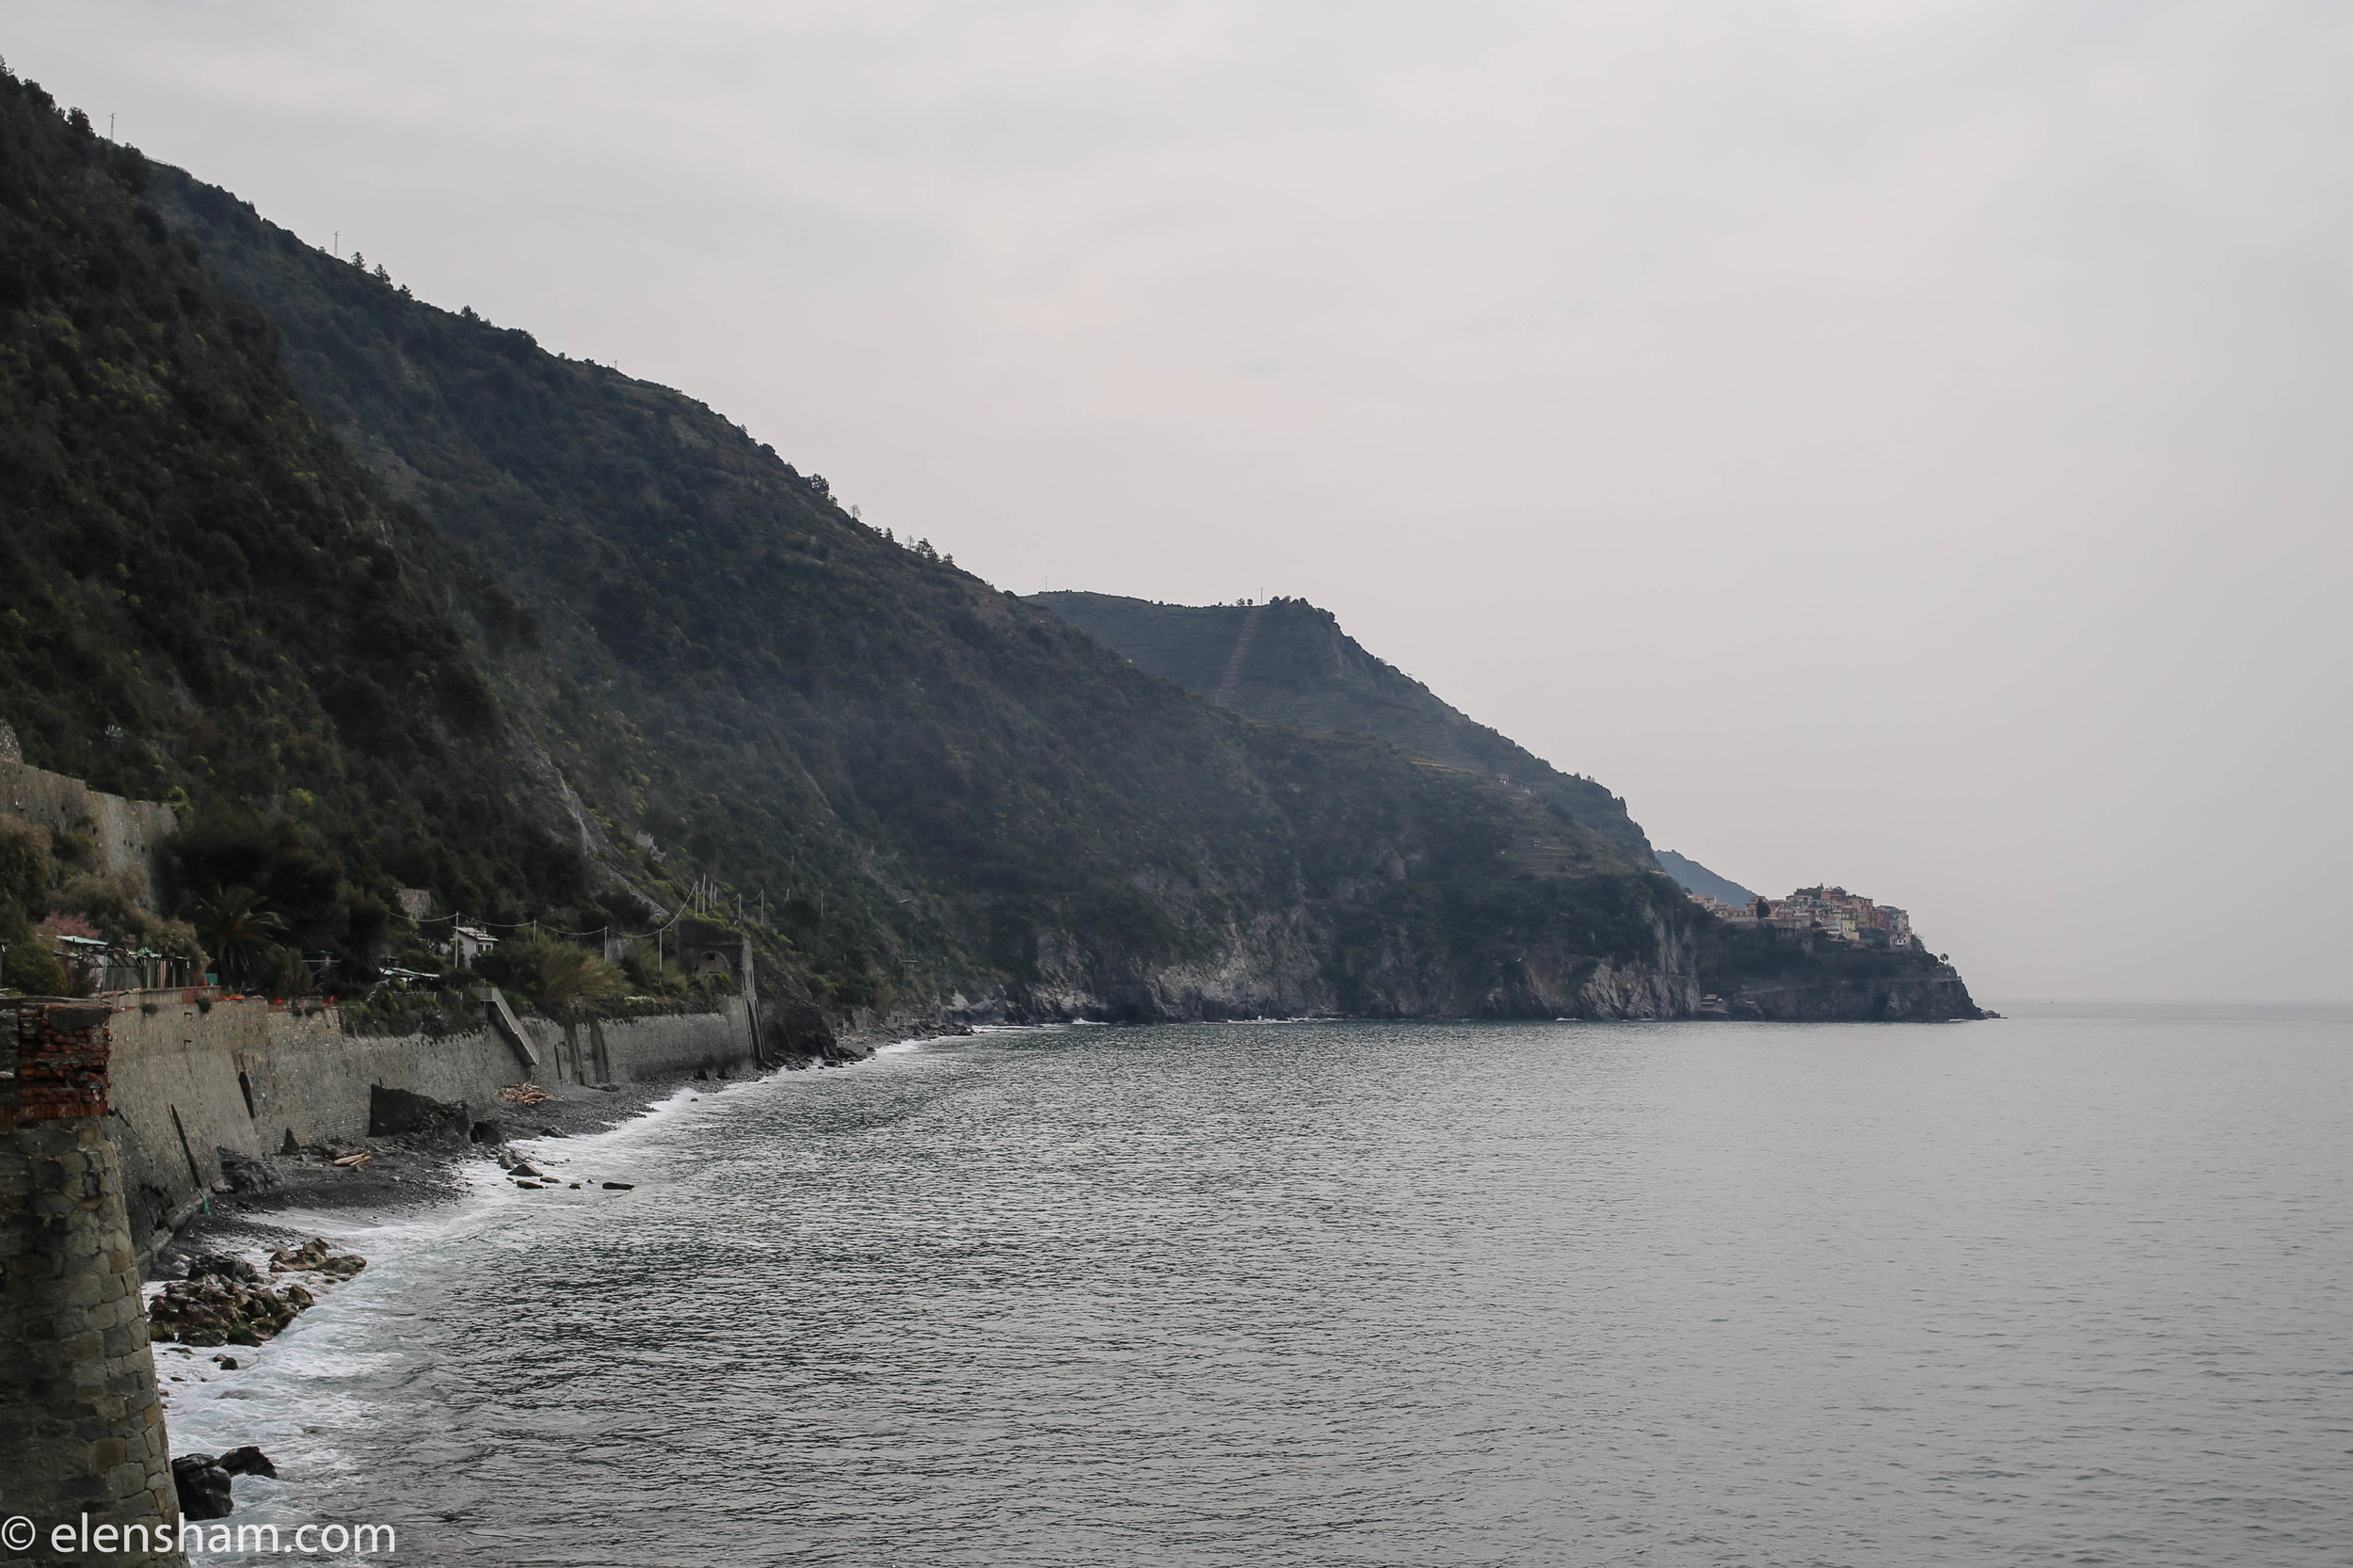 Trying to get to Manarola on foot. The path was closed half way and we had to go back to the train station.